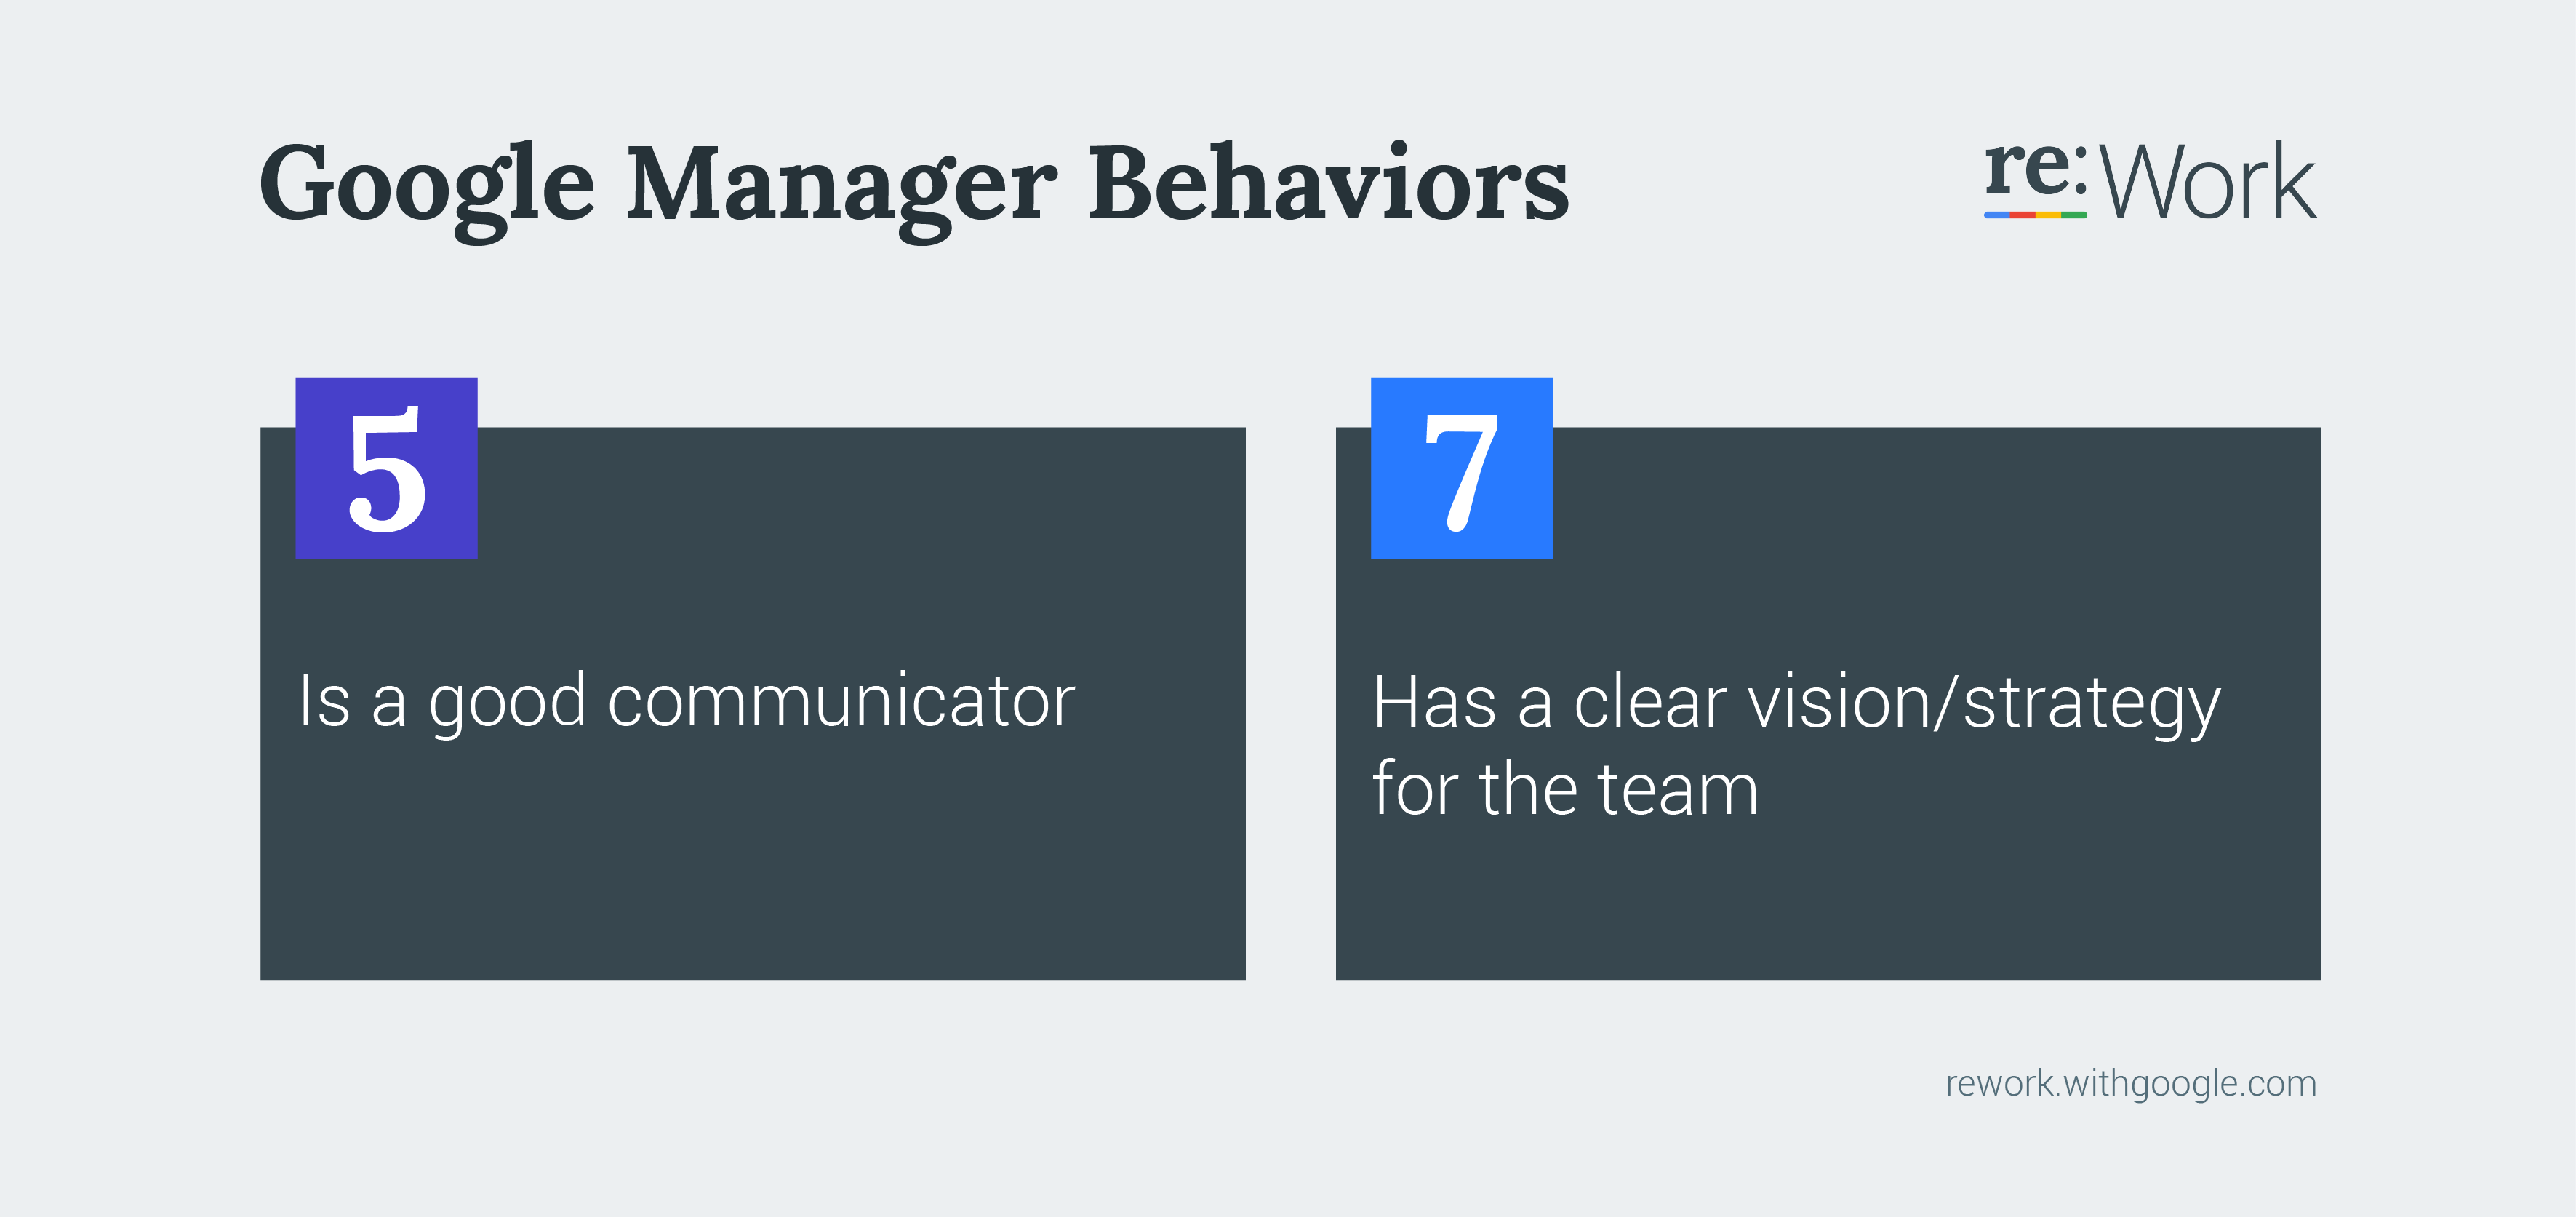 Google Manager Behaviors 5 Is a good communicator. 7 Has a clear vision/strategy for the team.